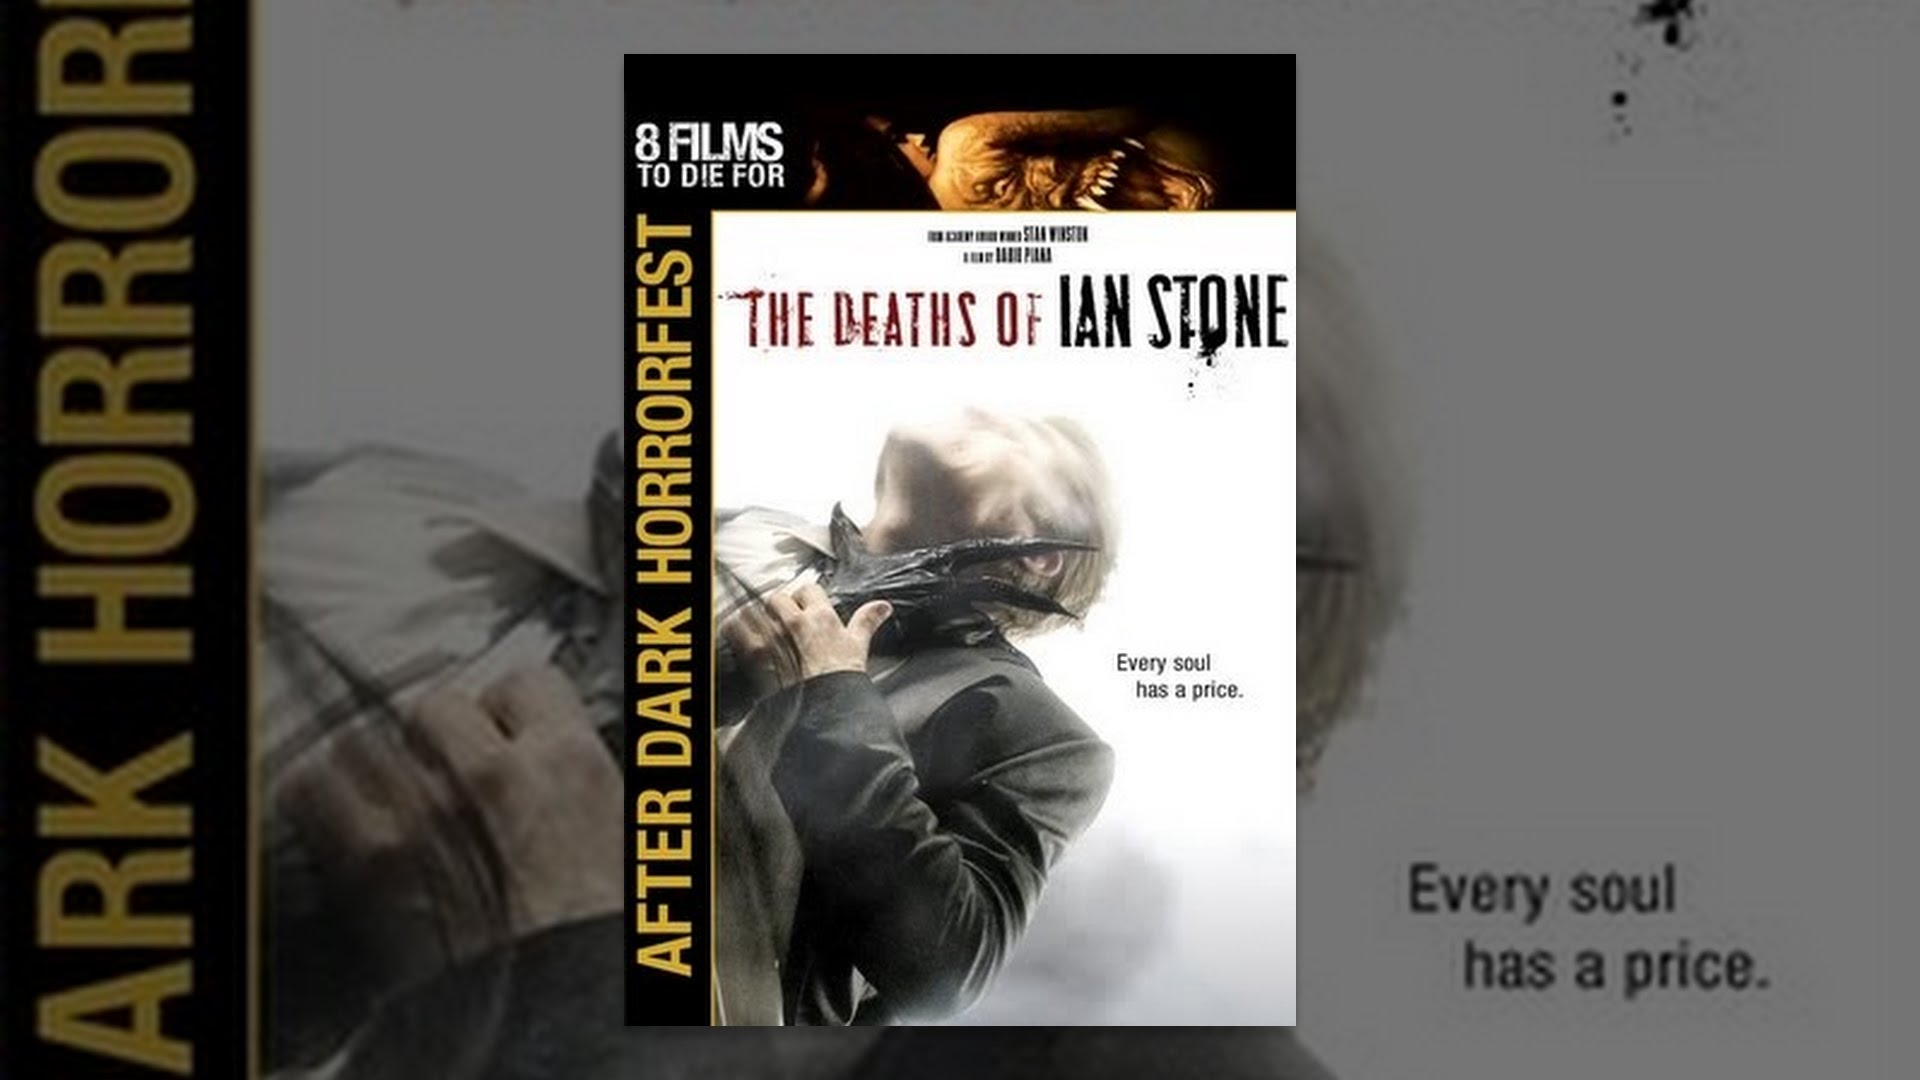 The Deaths Of Ian Stone - YouTube